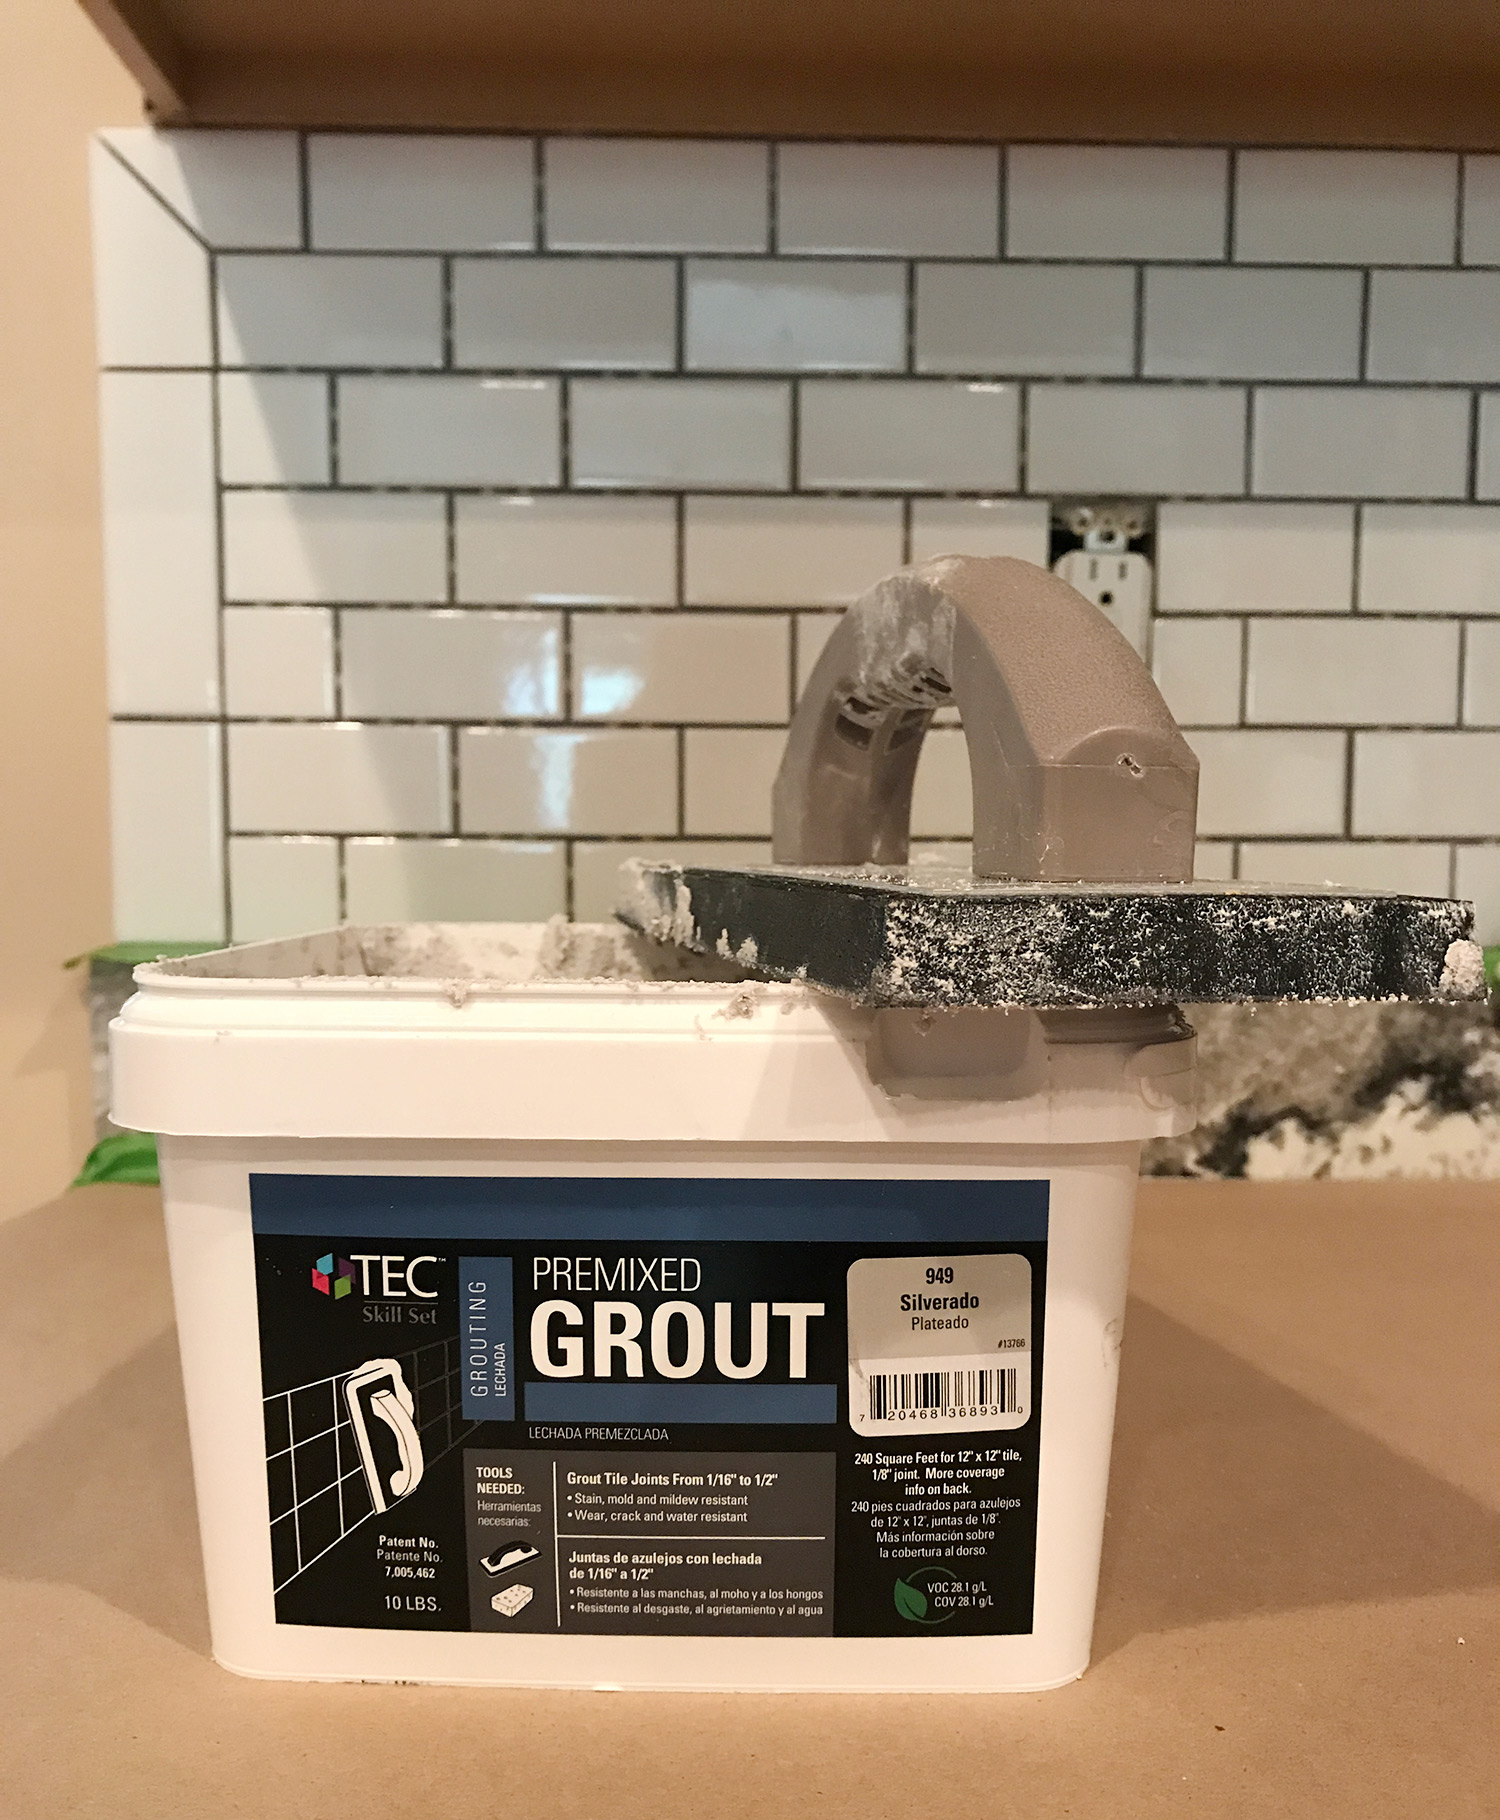 How-to-add-a-backsplash-cheap-and-so-easy-Has-all-the-pics-and-info-and-even-a-video-wallpaper-wp4005371-1